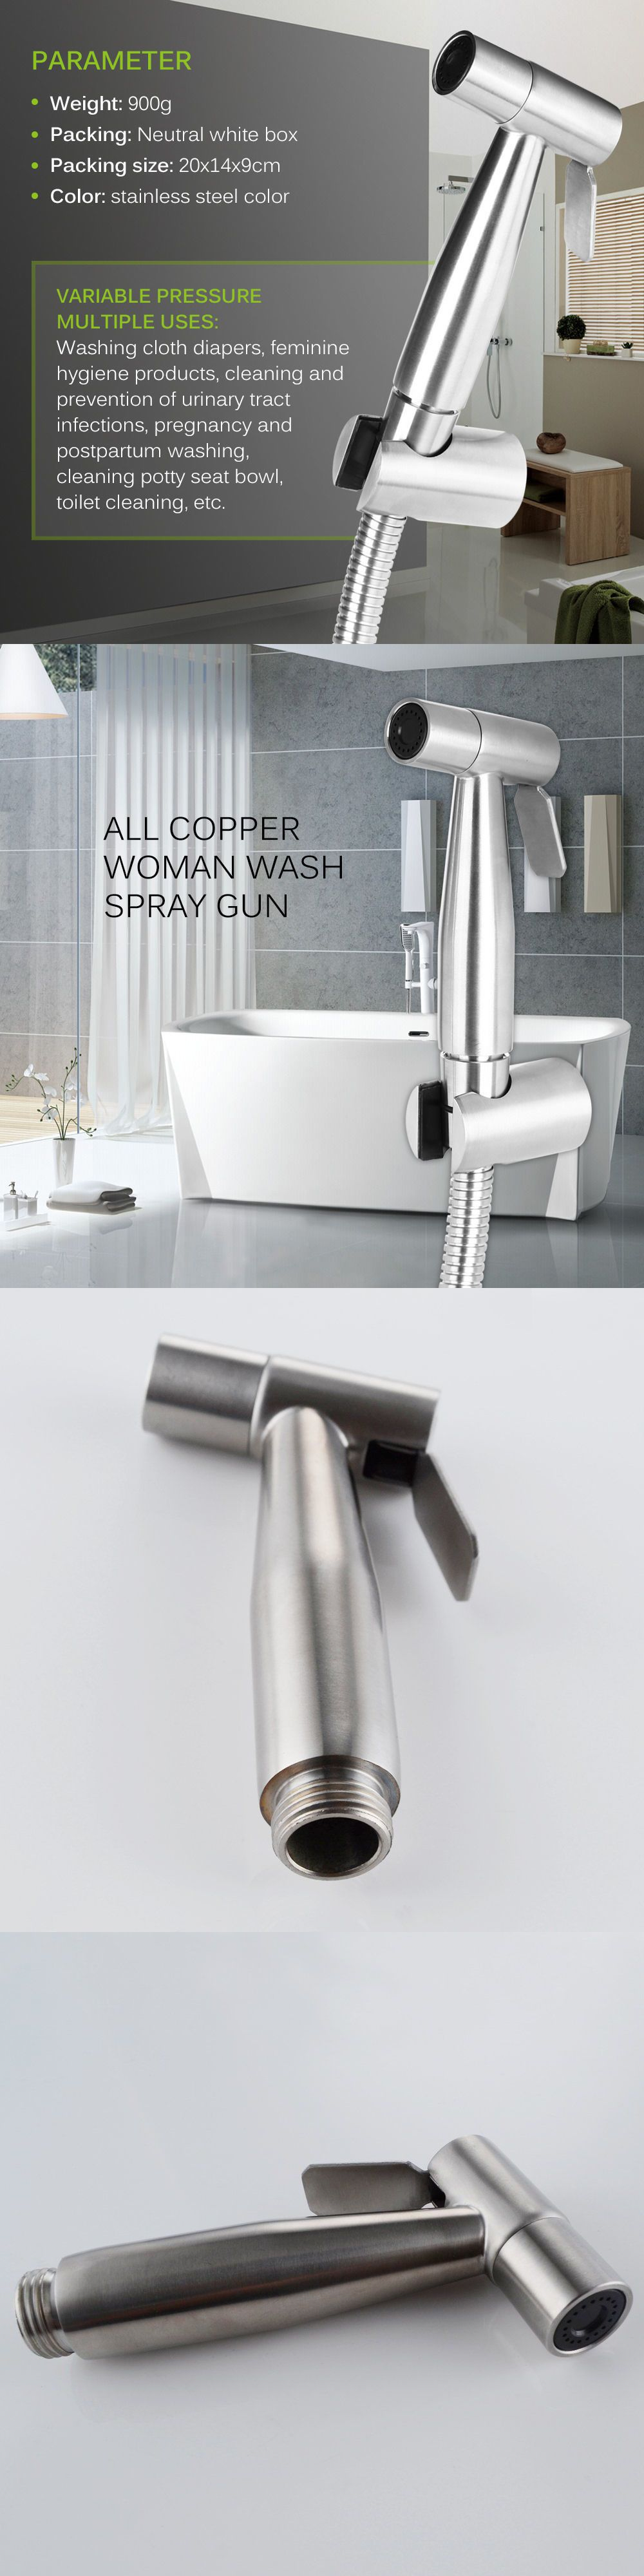 Bidets And Toilet Attachments 101405 Toilet Handheld Stainless